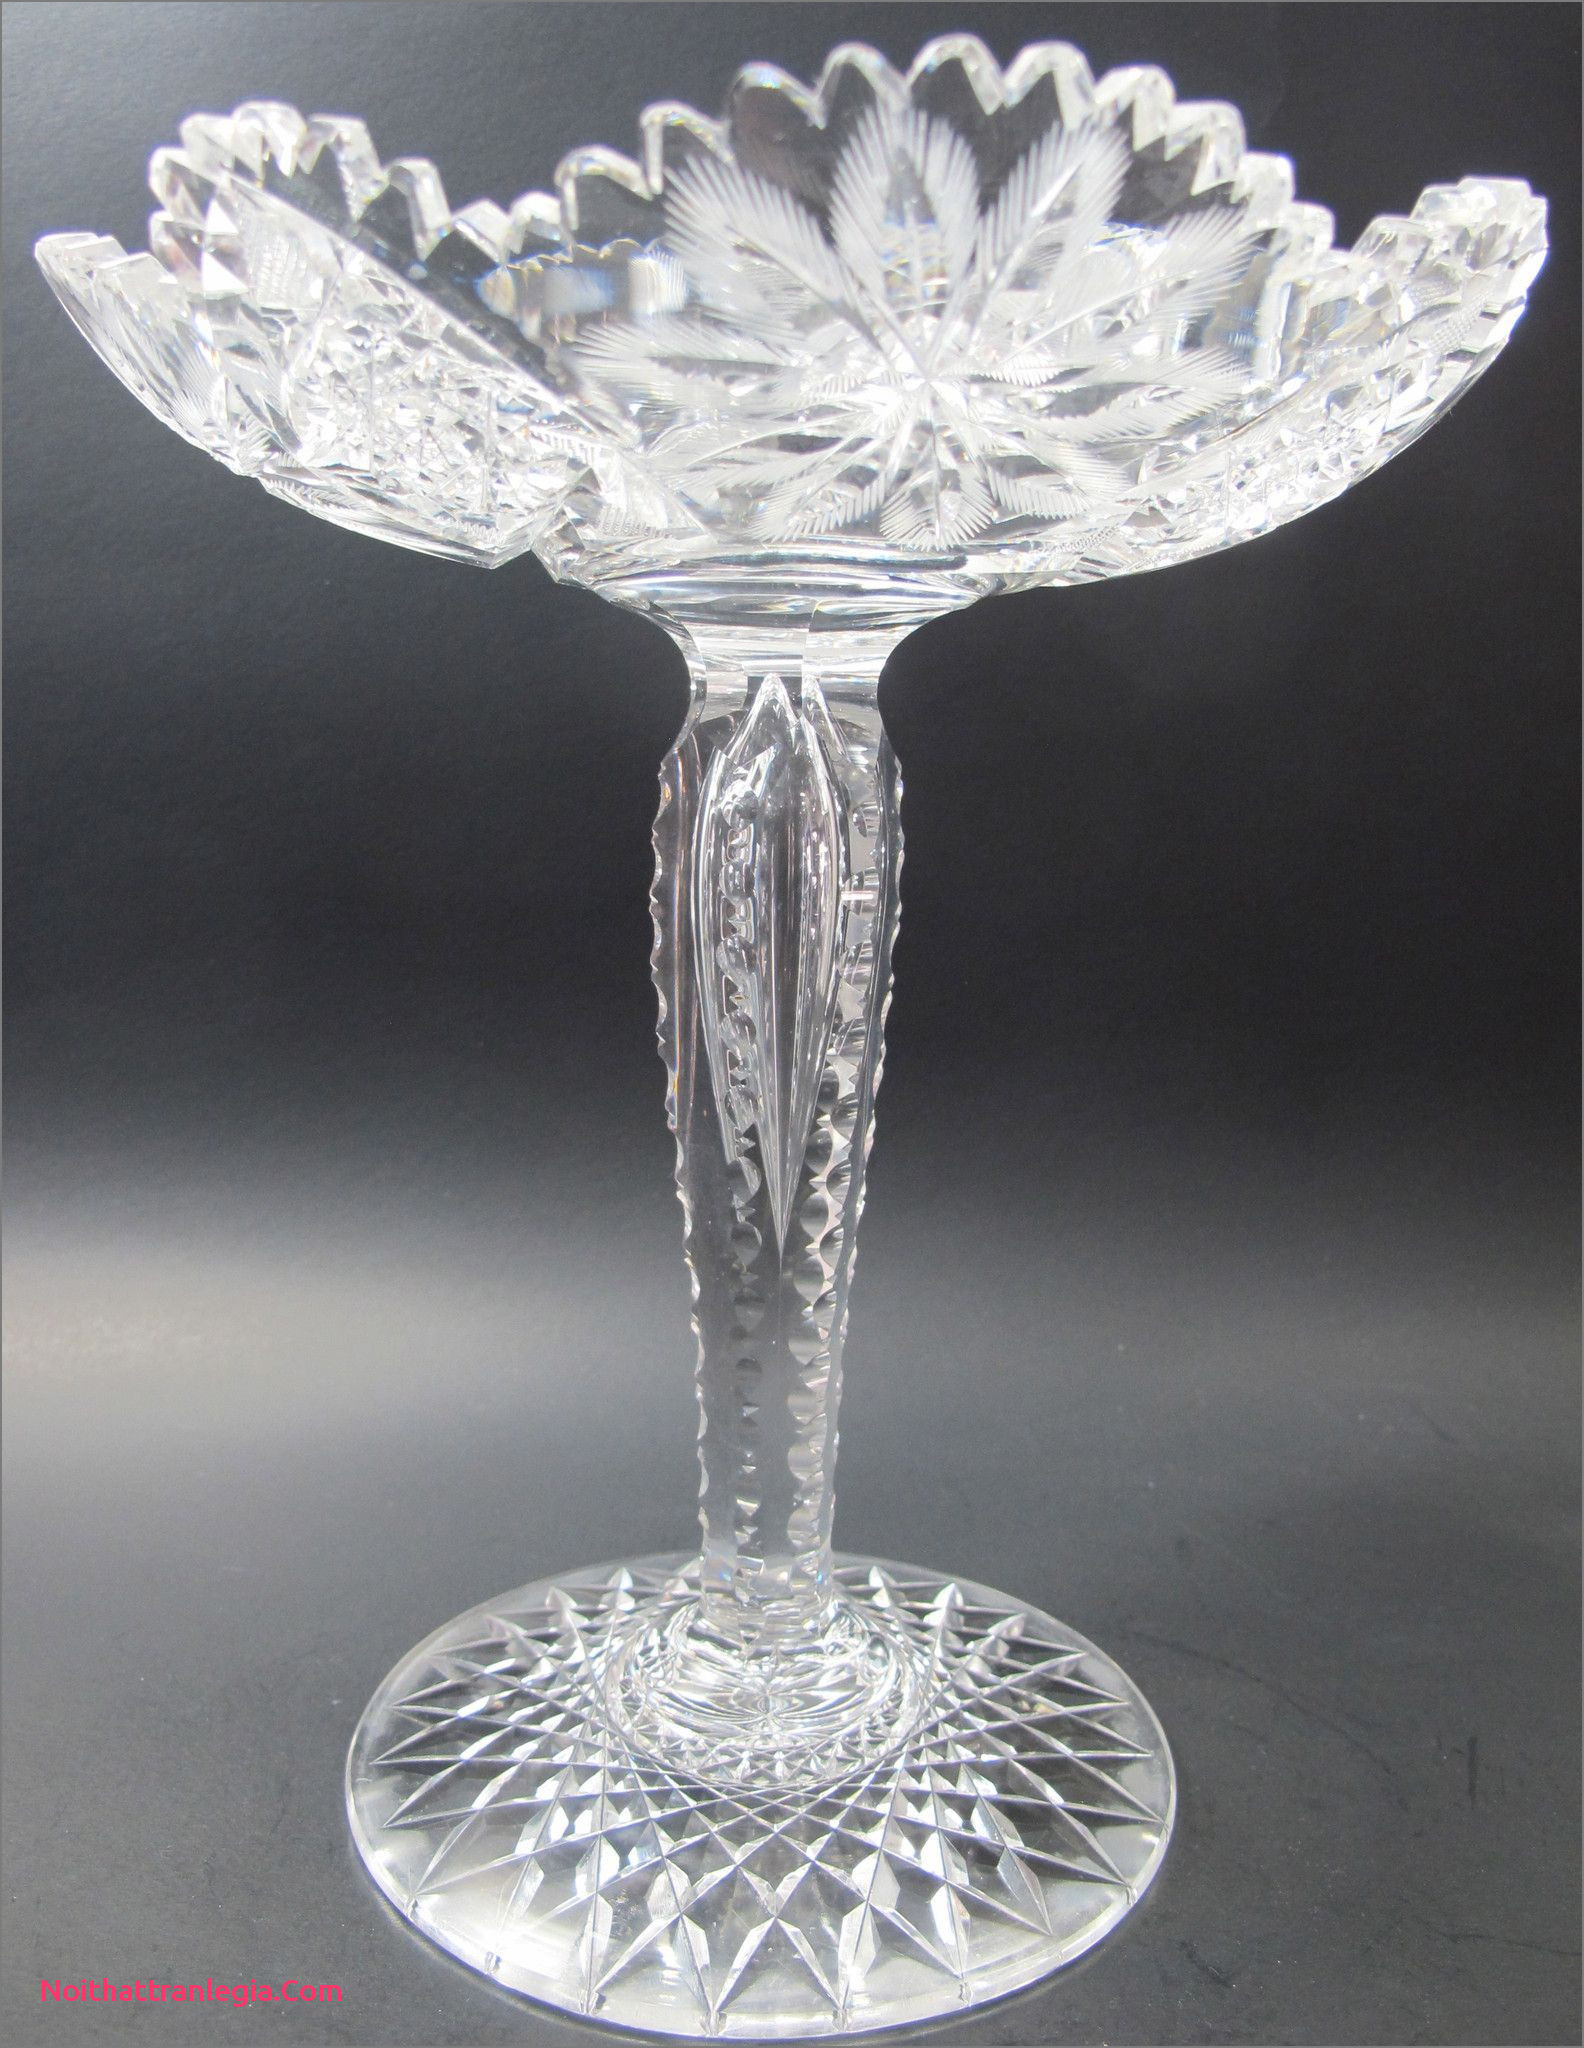 steuben crystal vase of 20 cut glass antique vase noithattranlegia vases design inside fering this abp antique cut glass pote from the american brilliant period 1886 1916 9 5